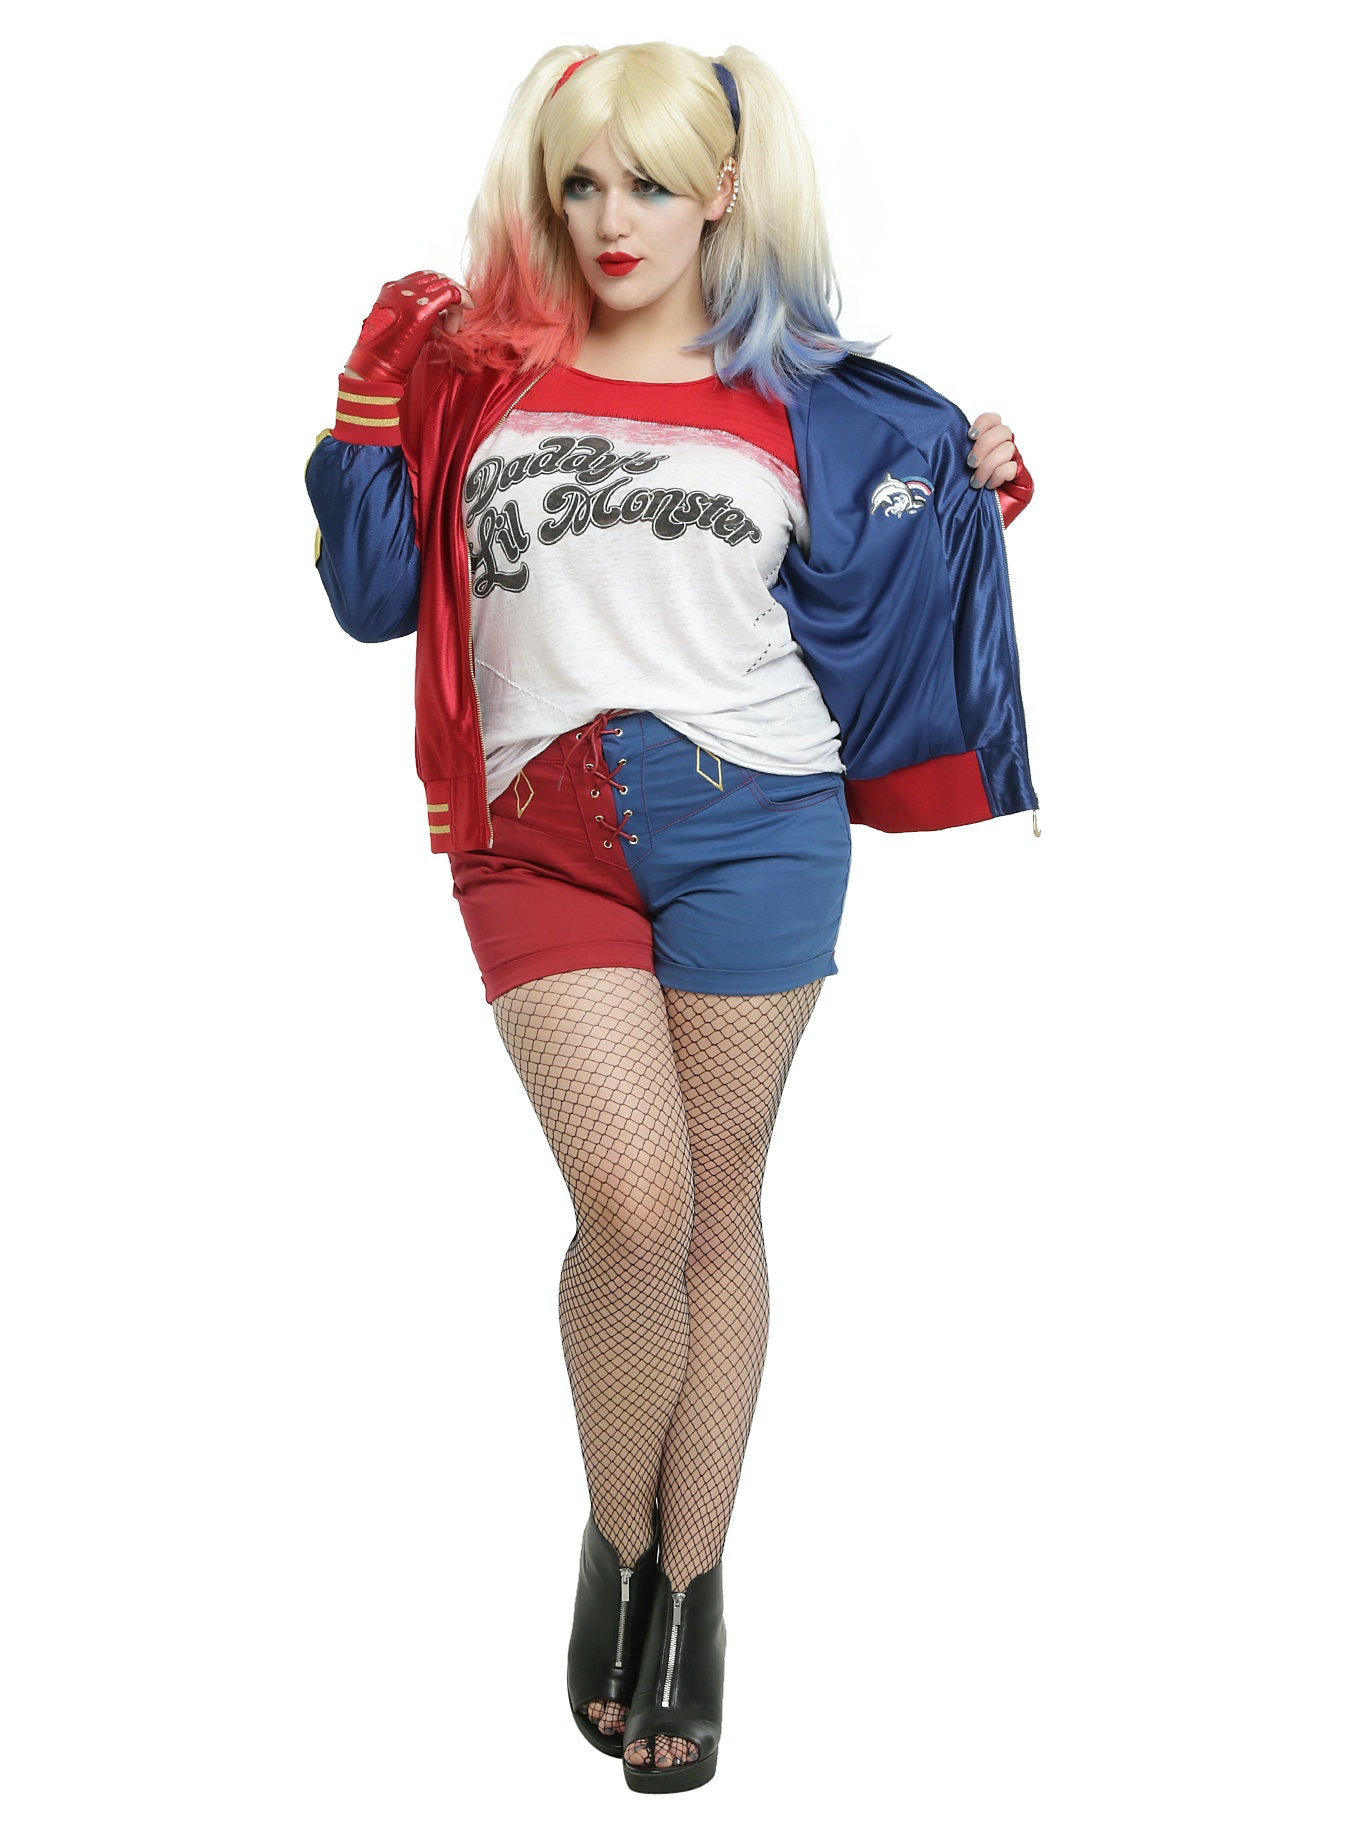 19 Plus Size Halloween Costumes In 5x, 6x, & Higher Because ...